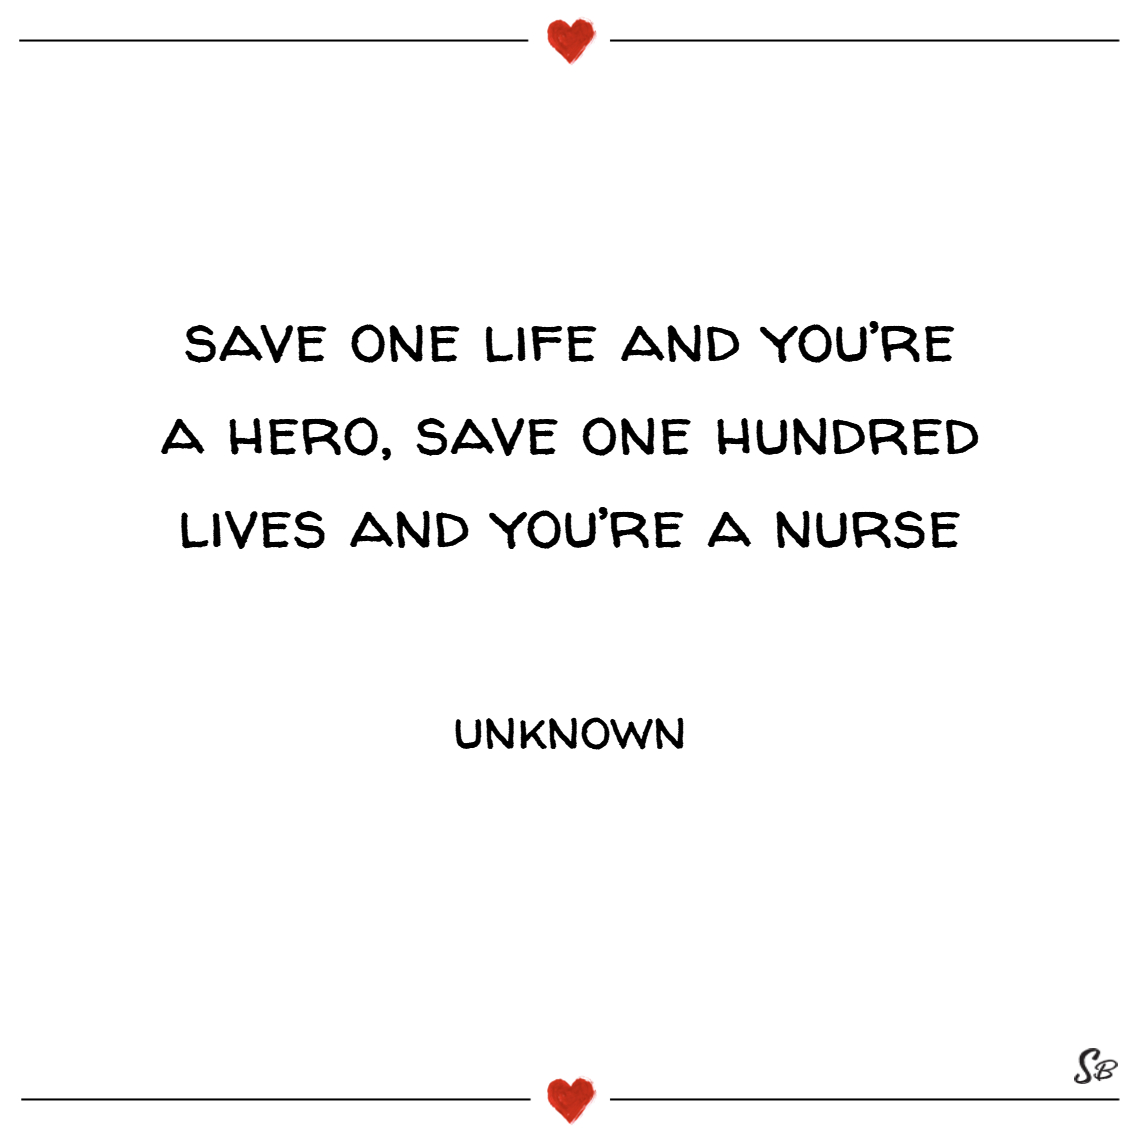 Save one life and you're a hero, save one hundred